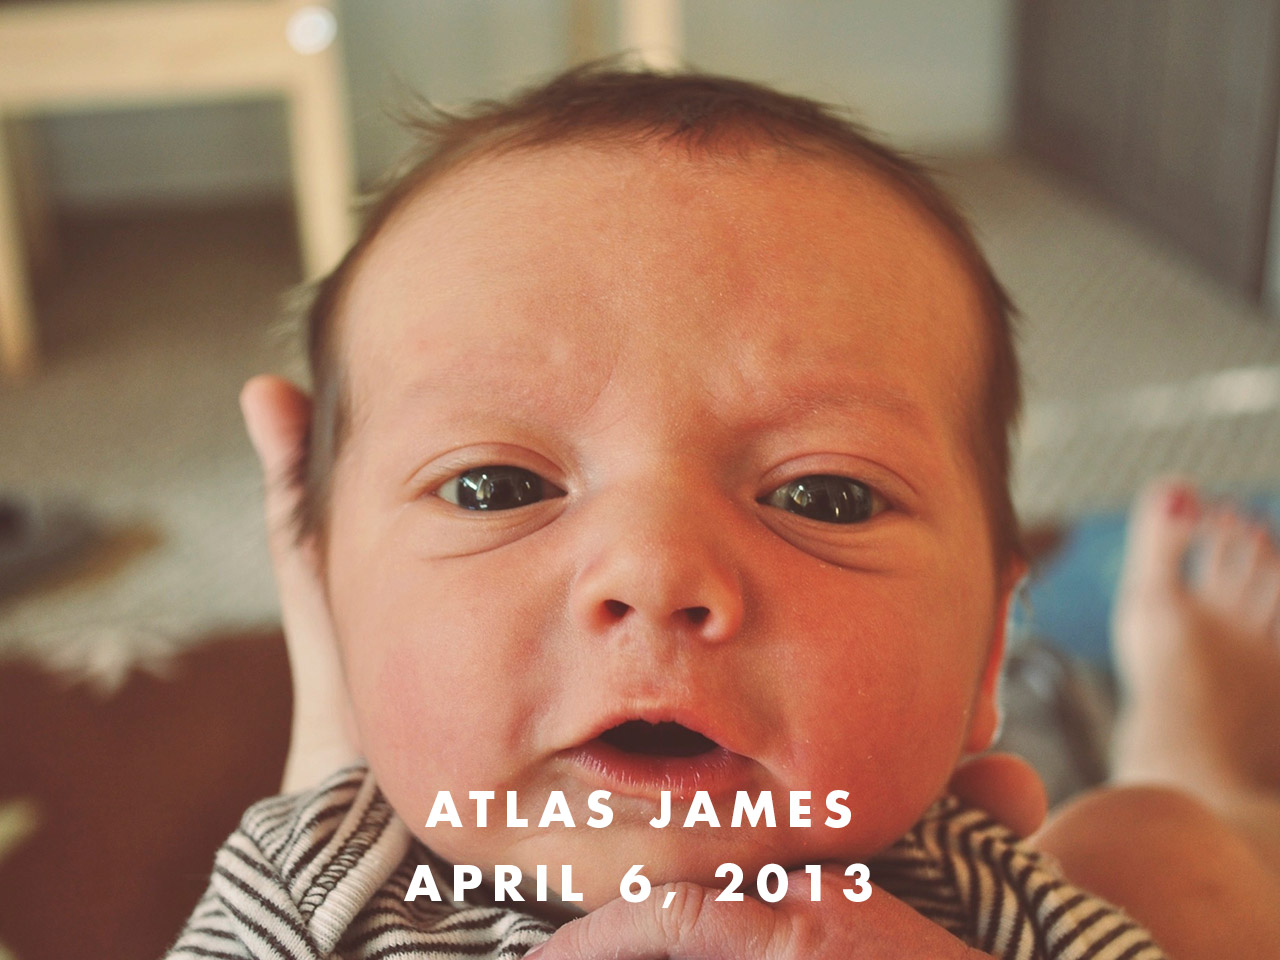 Atlas James